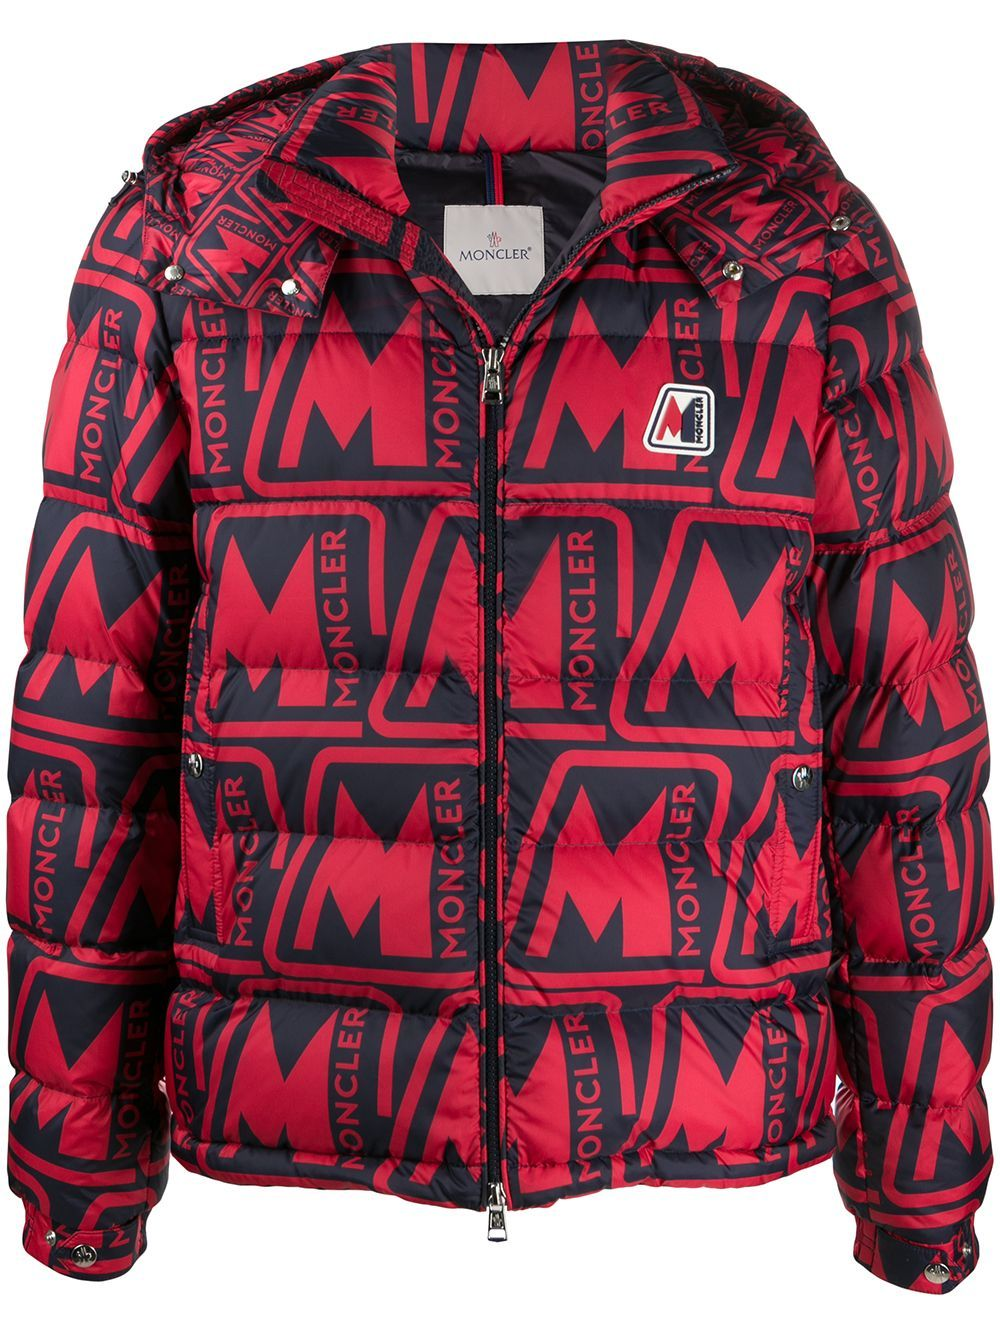 Moncler logo-print padded jacket red/black